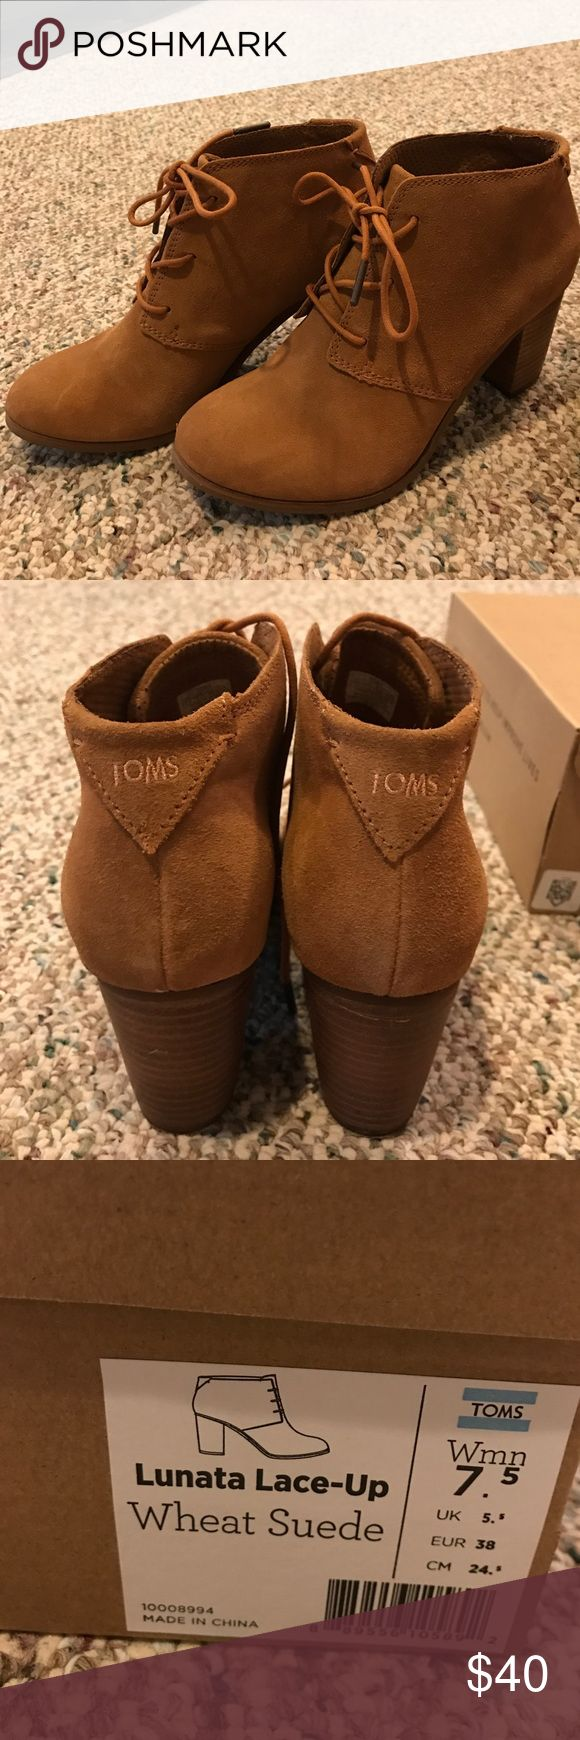 TOMS Lunata Lace-up Wheat Suede Booties 7.5M ⚡️PRICE FIRM⚡️ Wore just once! A little too big for me. TOMS Shoes Ankle Boots & Booties